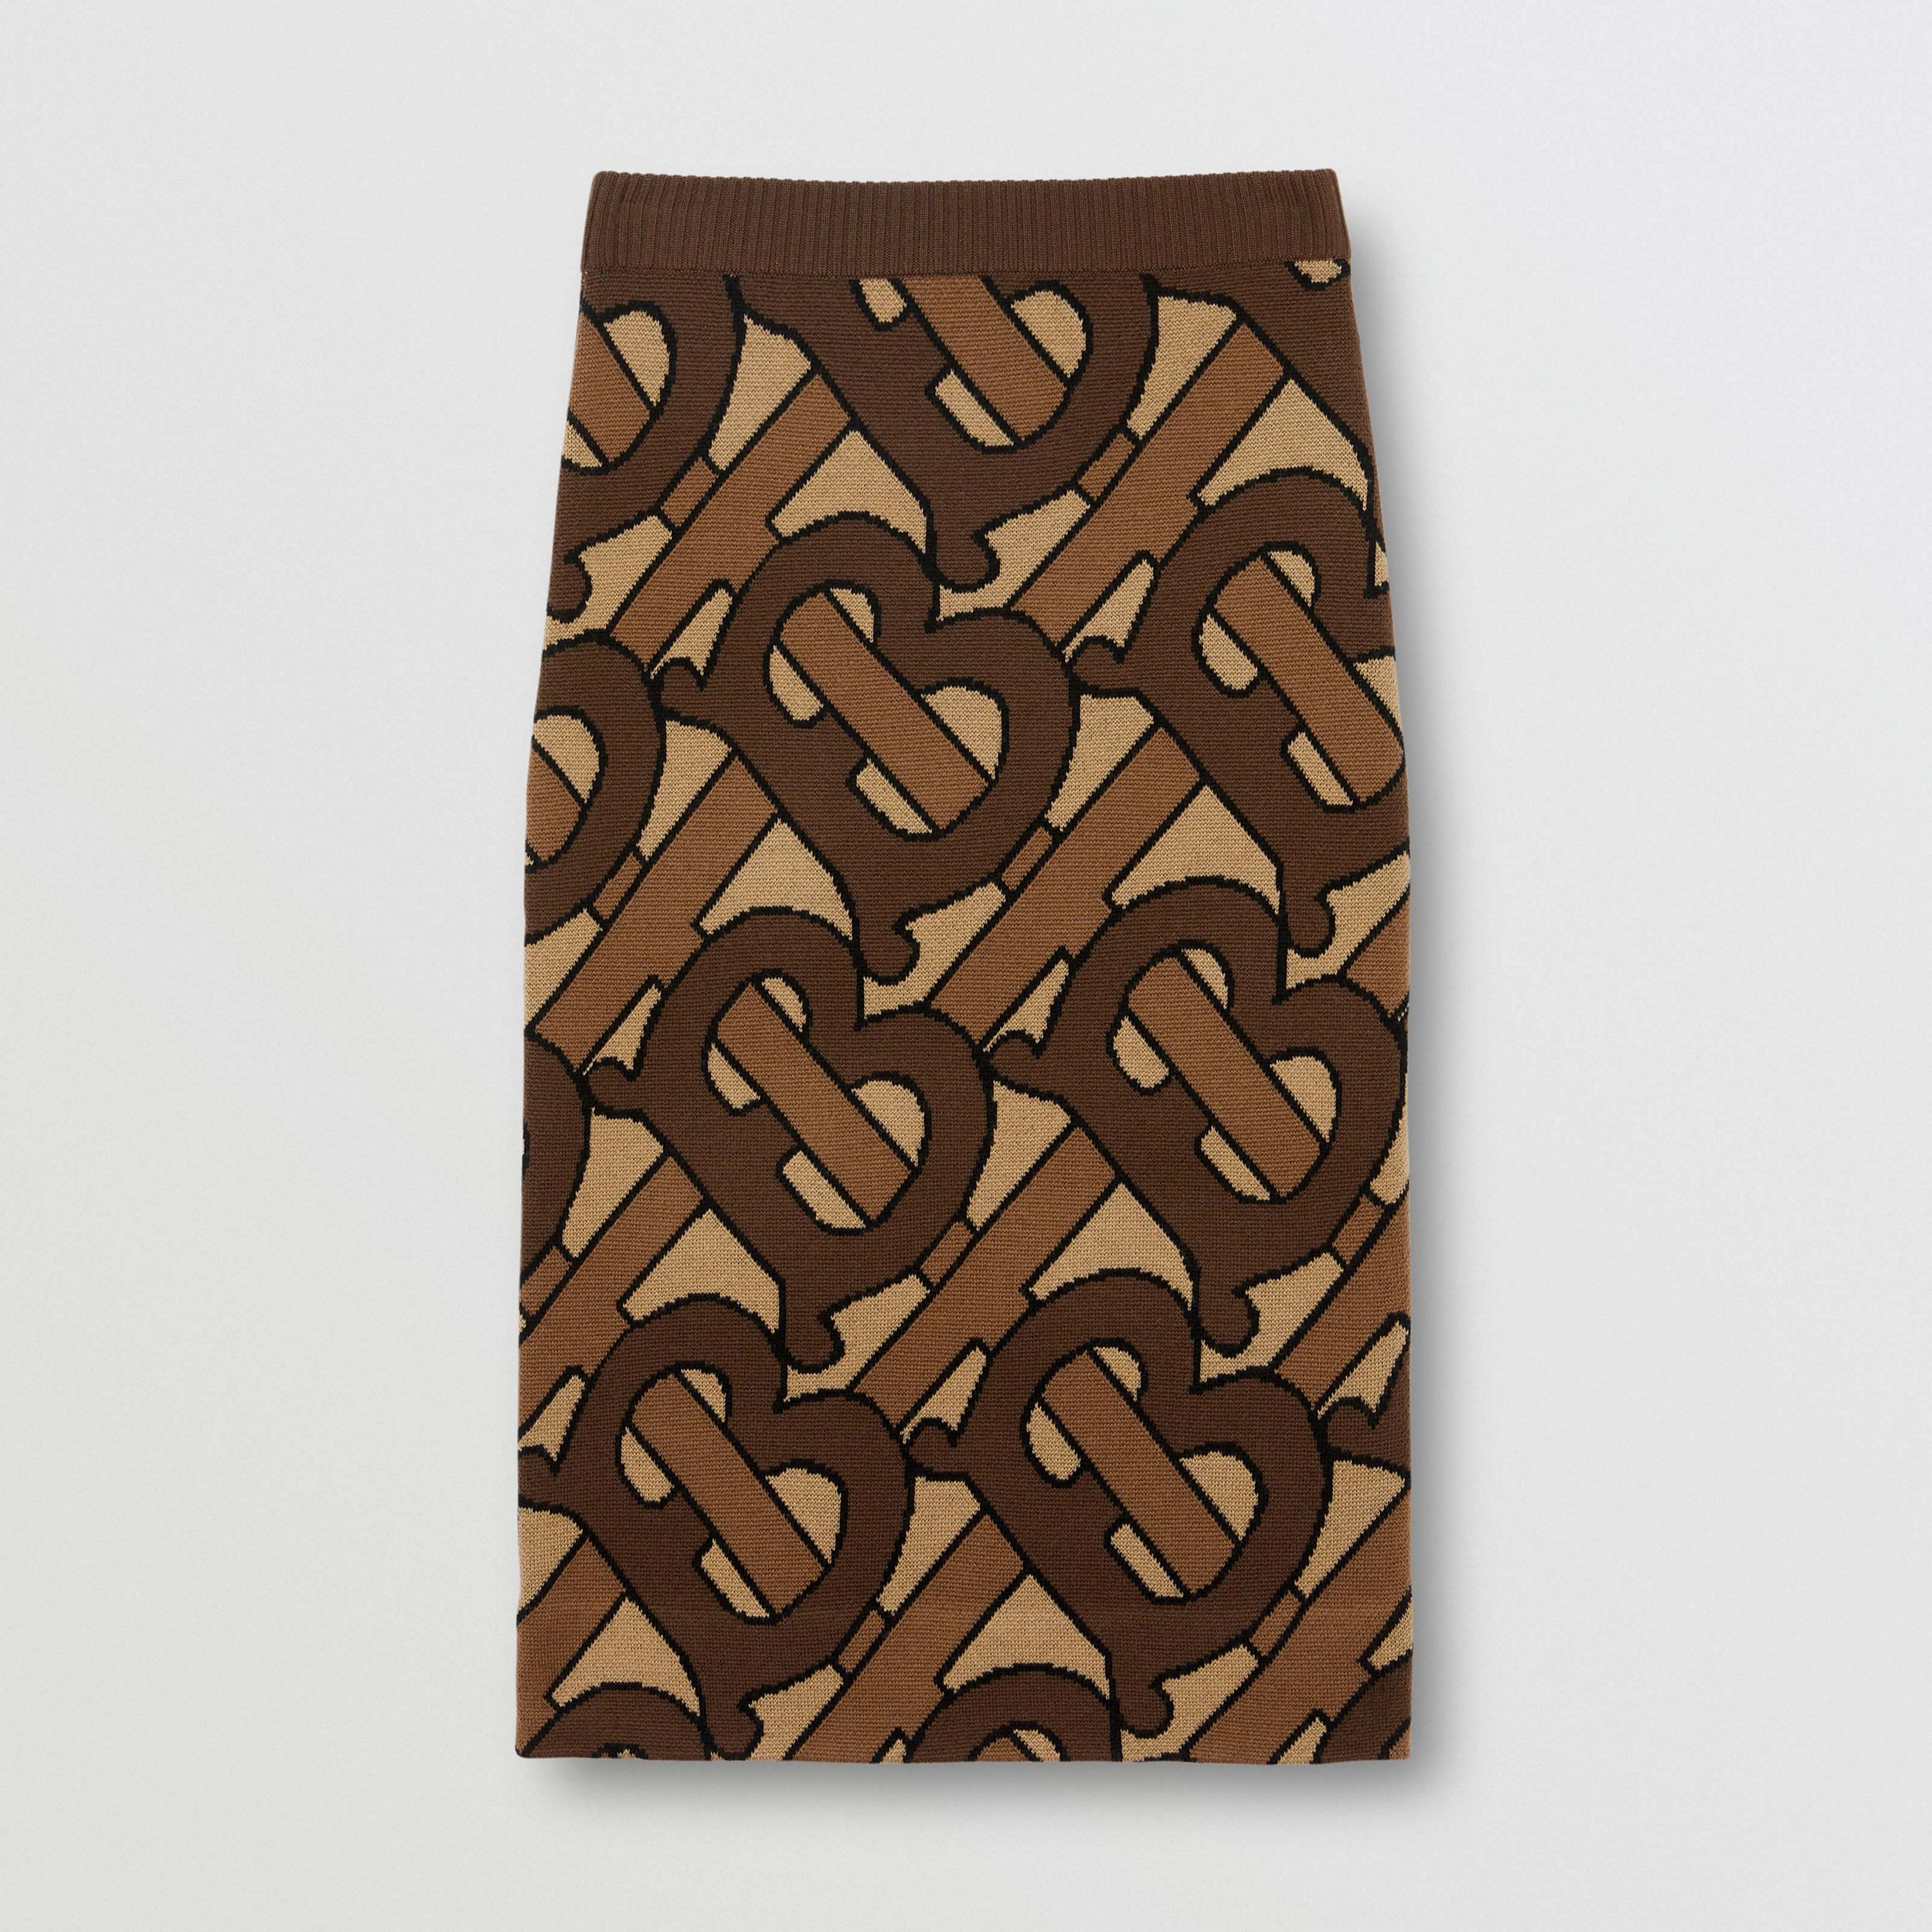 Monogram Intarsia Wool Pencil Skirt in Bridle Brown - Women | Burberry - 4